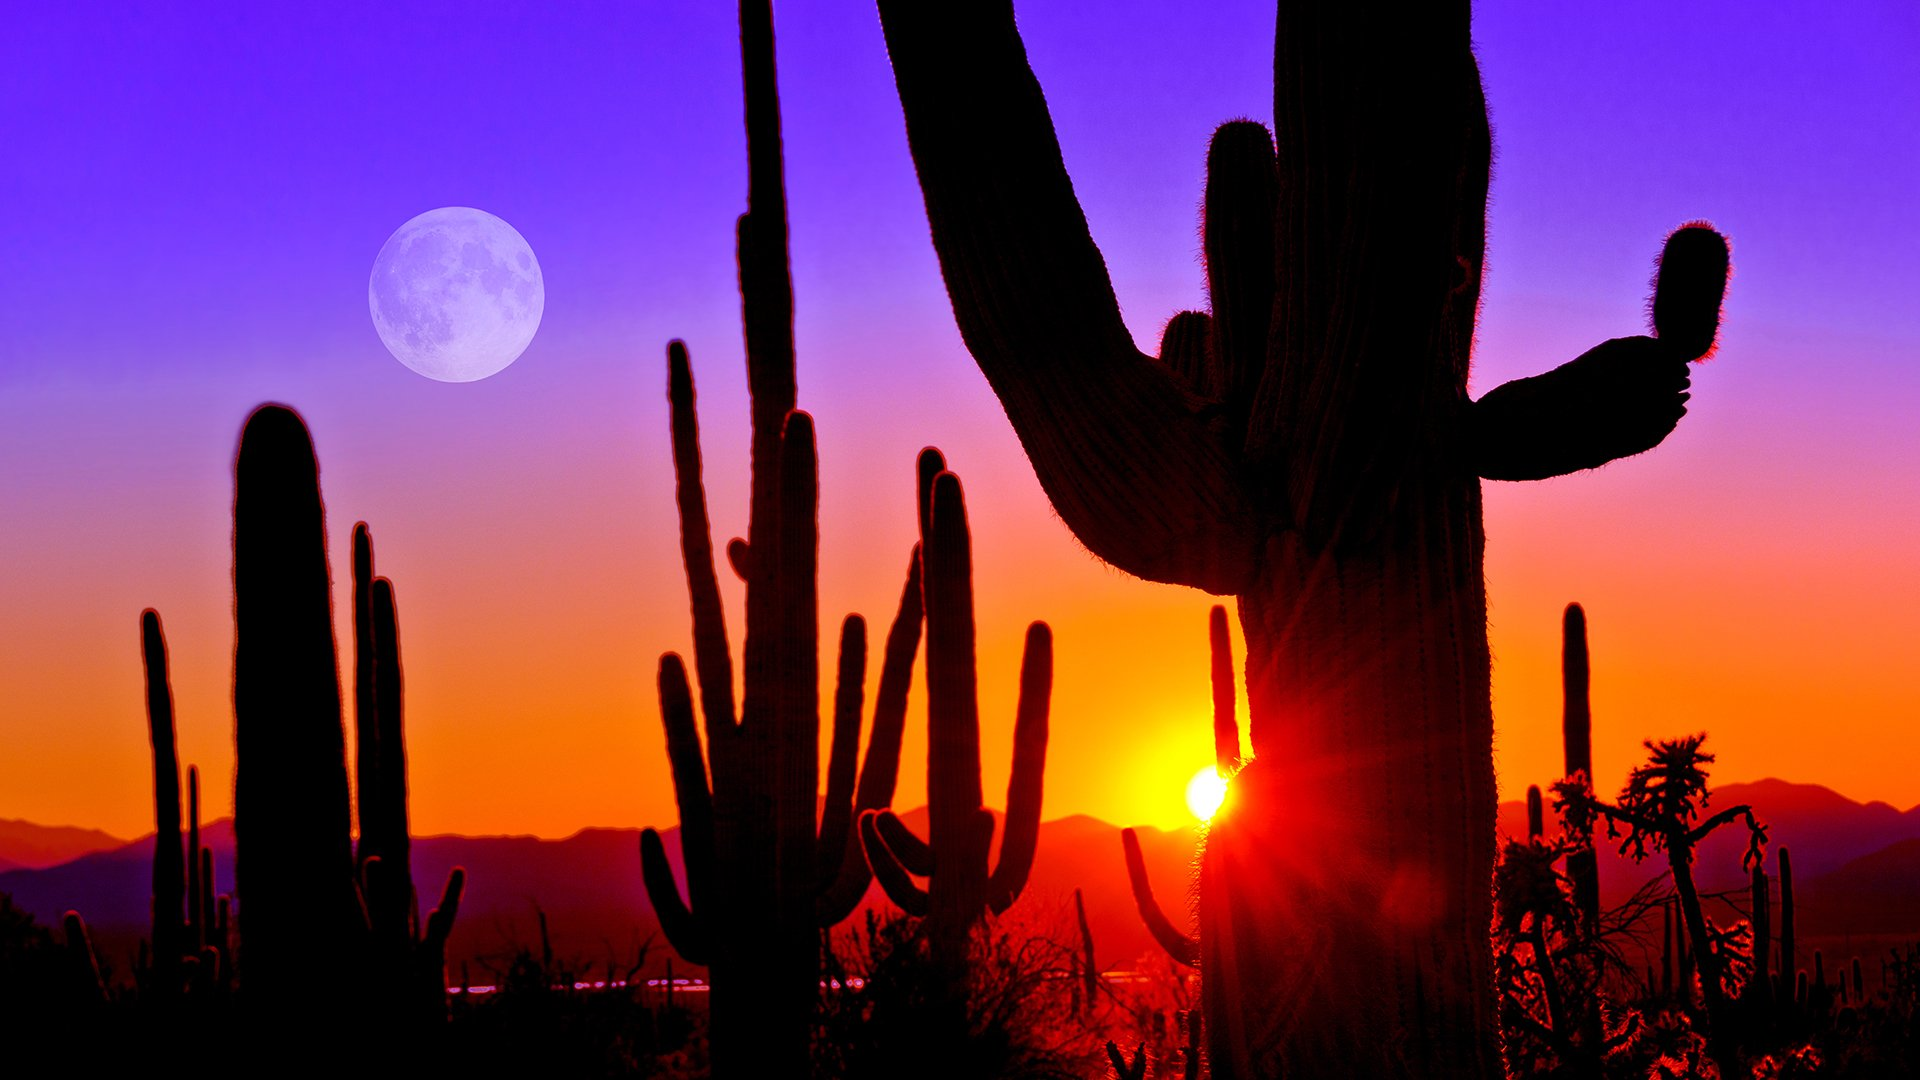 Sunset at Saguaro National Park near Tucson Arizona USA 1920x1080